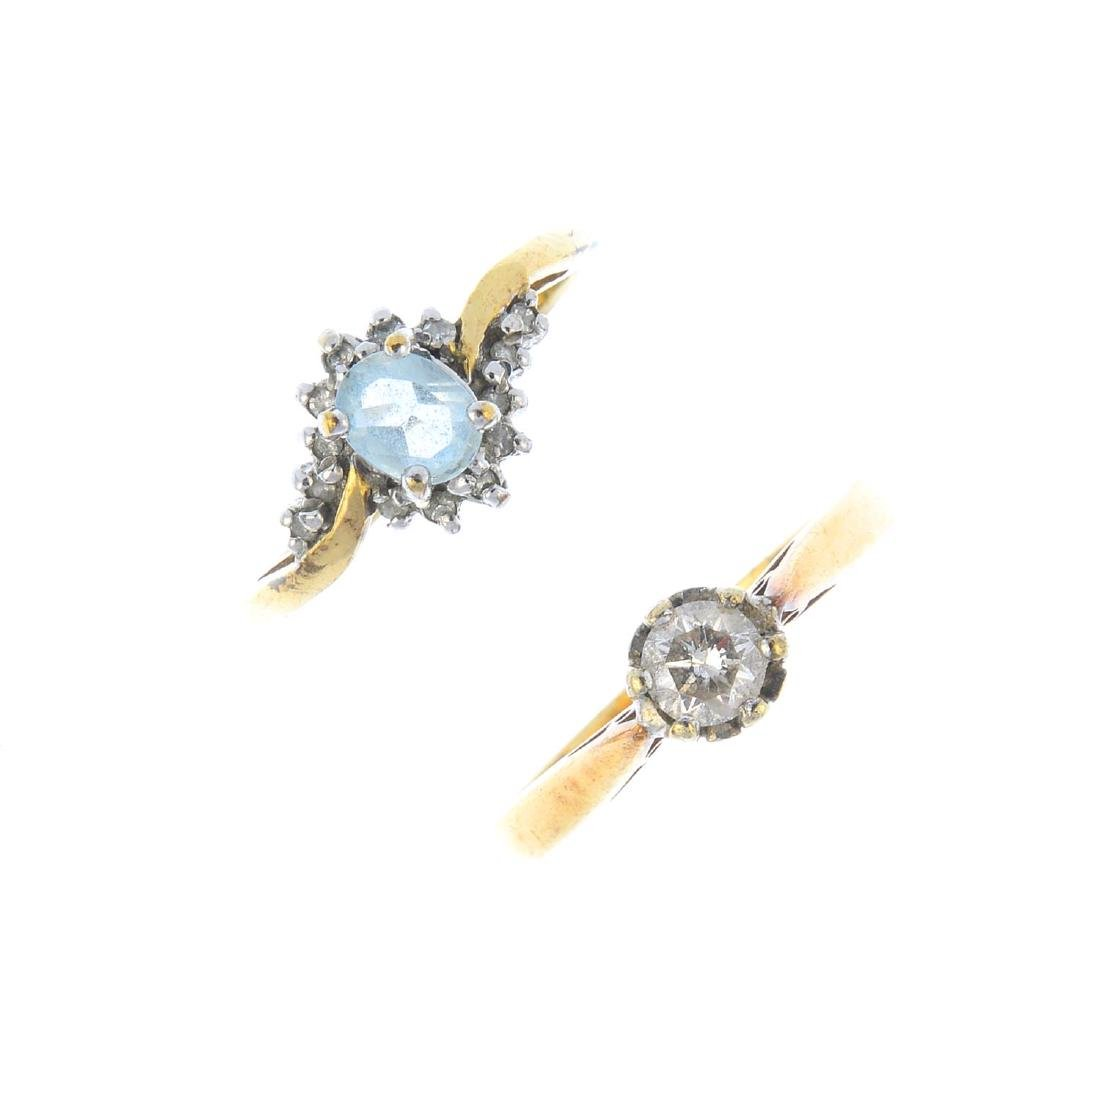 Two 9ct gold diamond and gem-set rings. To include an